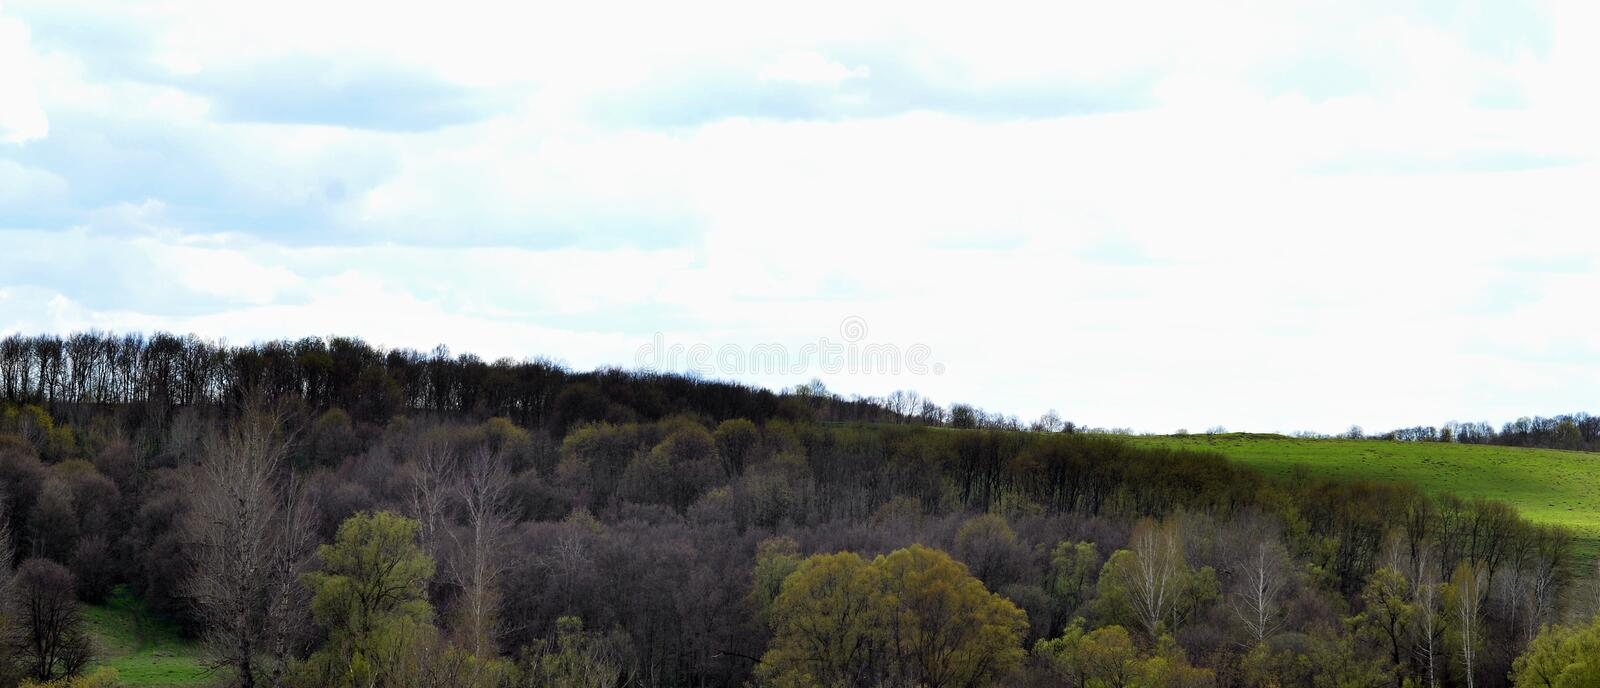 Panorama of the rural landscape in the early summer royalty free stock image